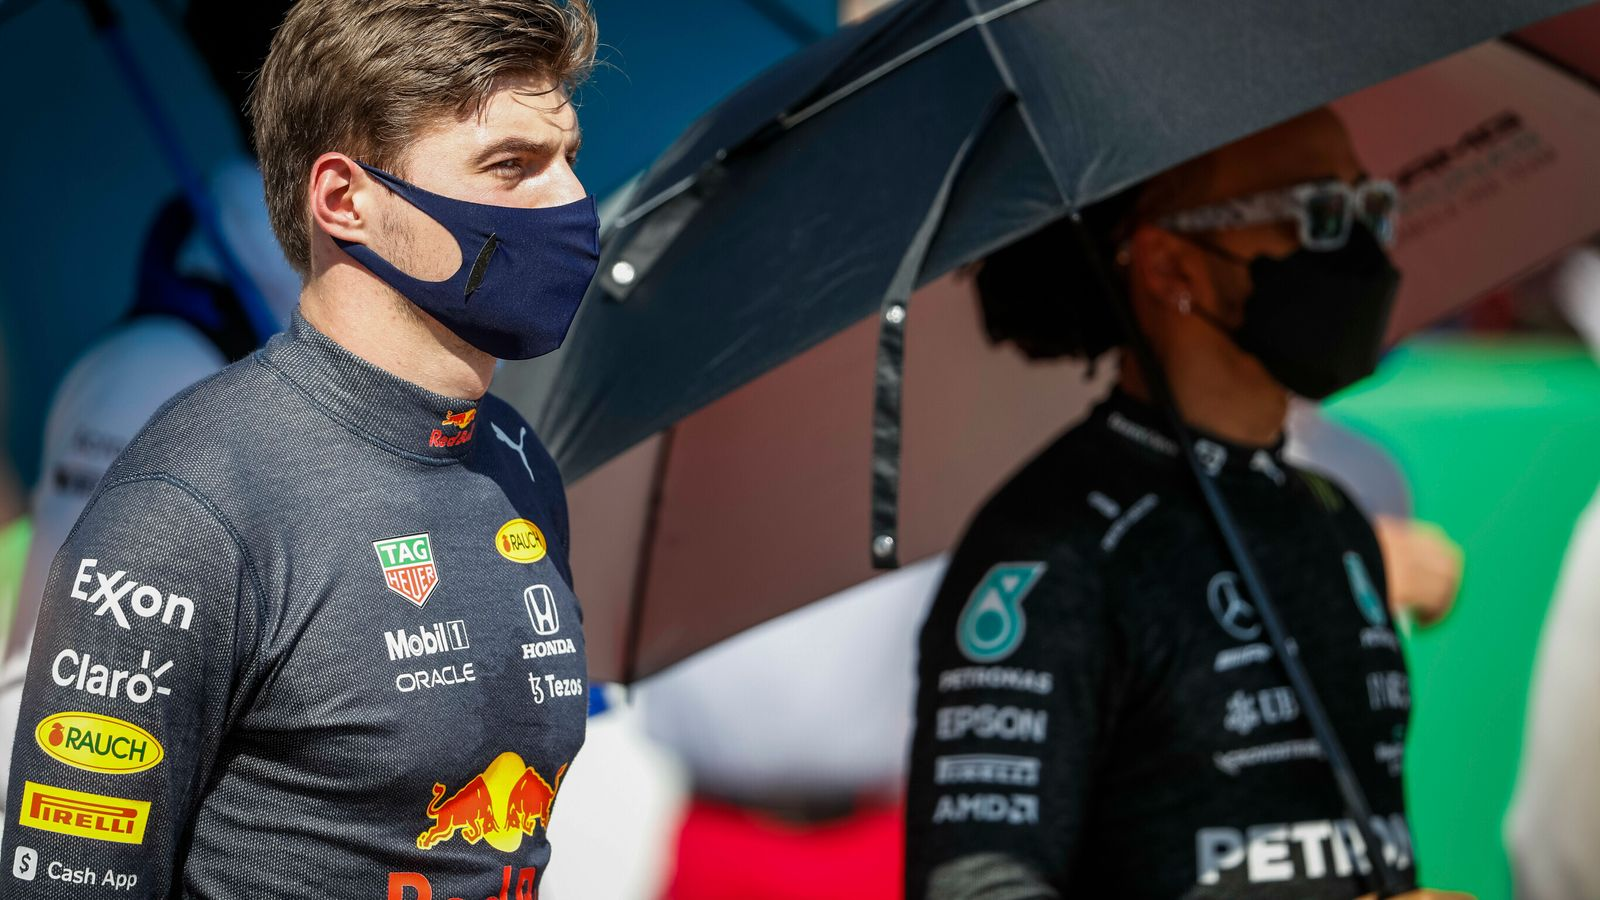 Martin Brundle: On US GP, Max Verstappen vs Lewis Hamilton and why latest F1 duel may be defining